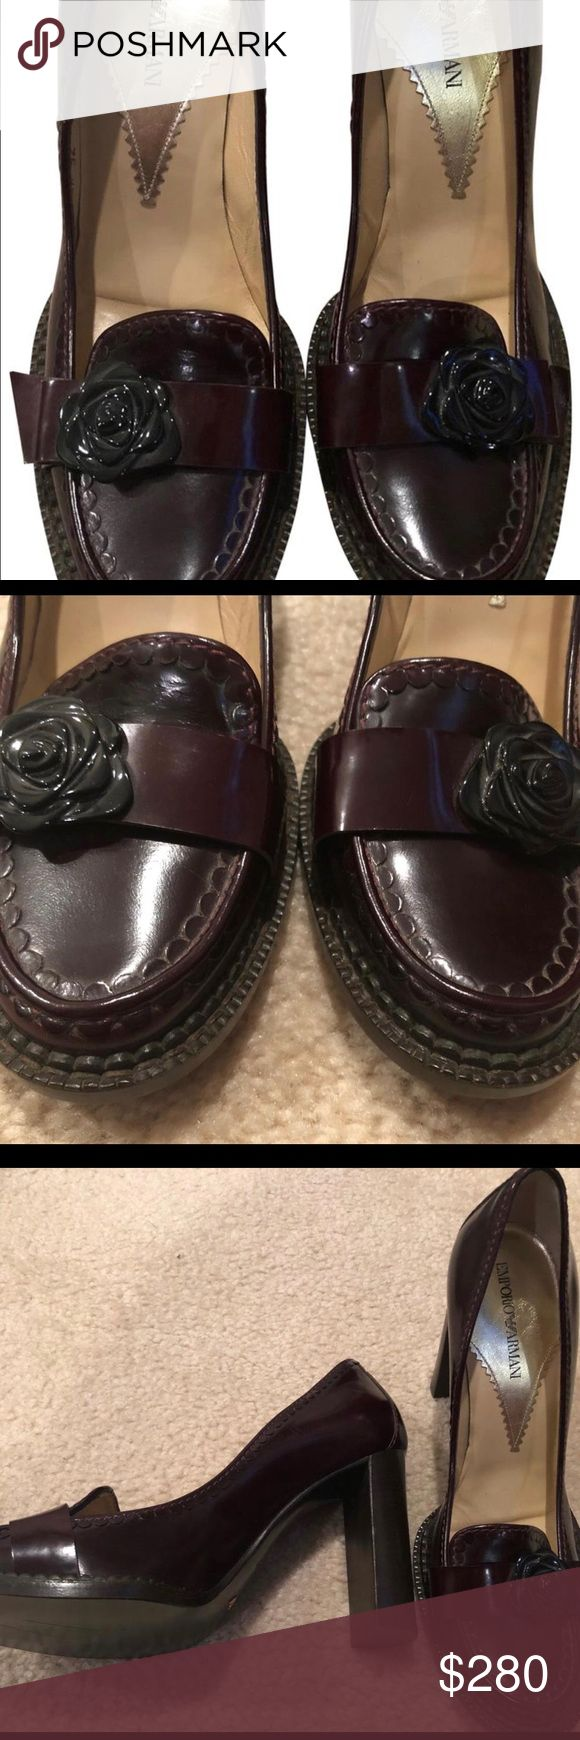 """Emporio Armani Xeda New Burgundy Heels Emporio Armani Xeda Burgundy Heels. New without box burgundy heel with black flower accent on front band. Wood heel 3 3/4"""". Style Xeda 92 879. I will add signature required when shipping to this sale. Emporio Armani Shoes Heels"""